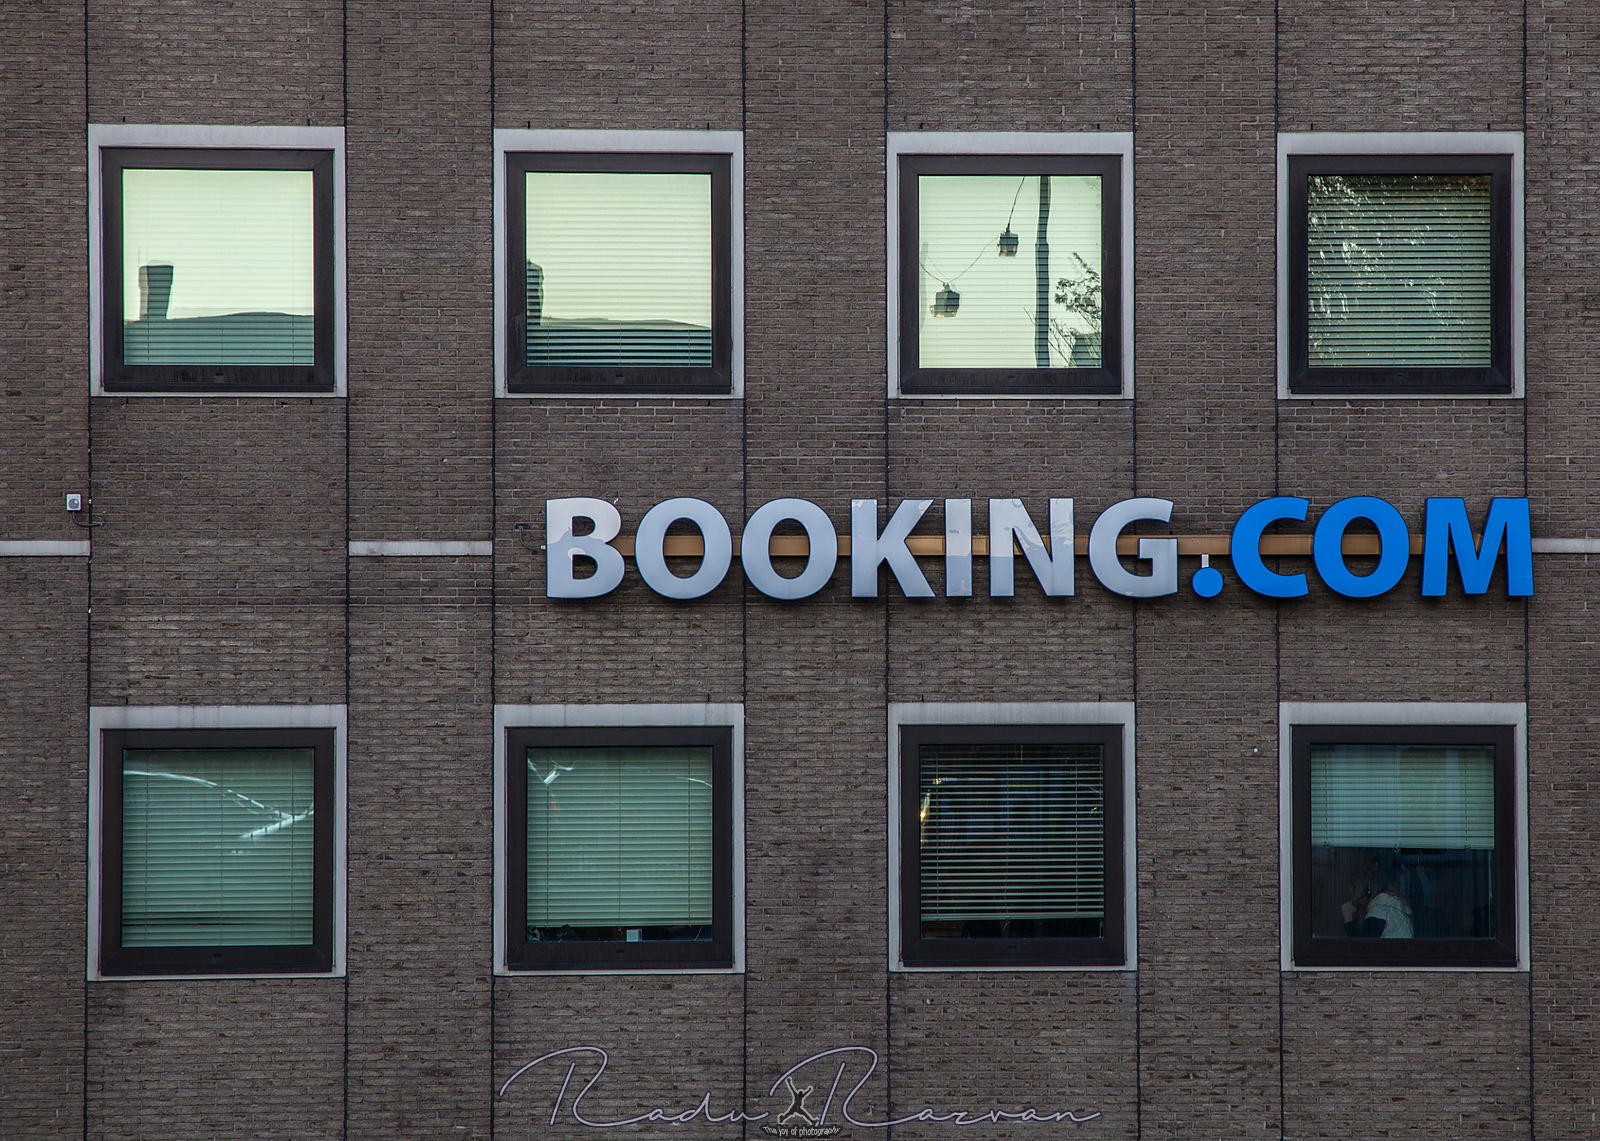 Booking.com's Offices in Amsterdam